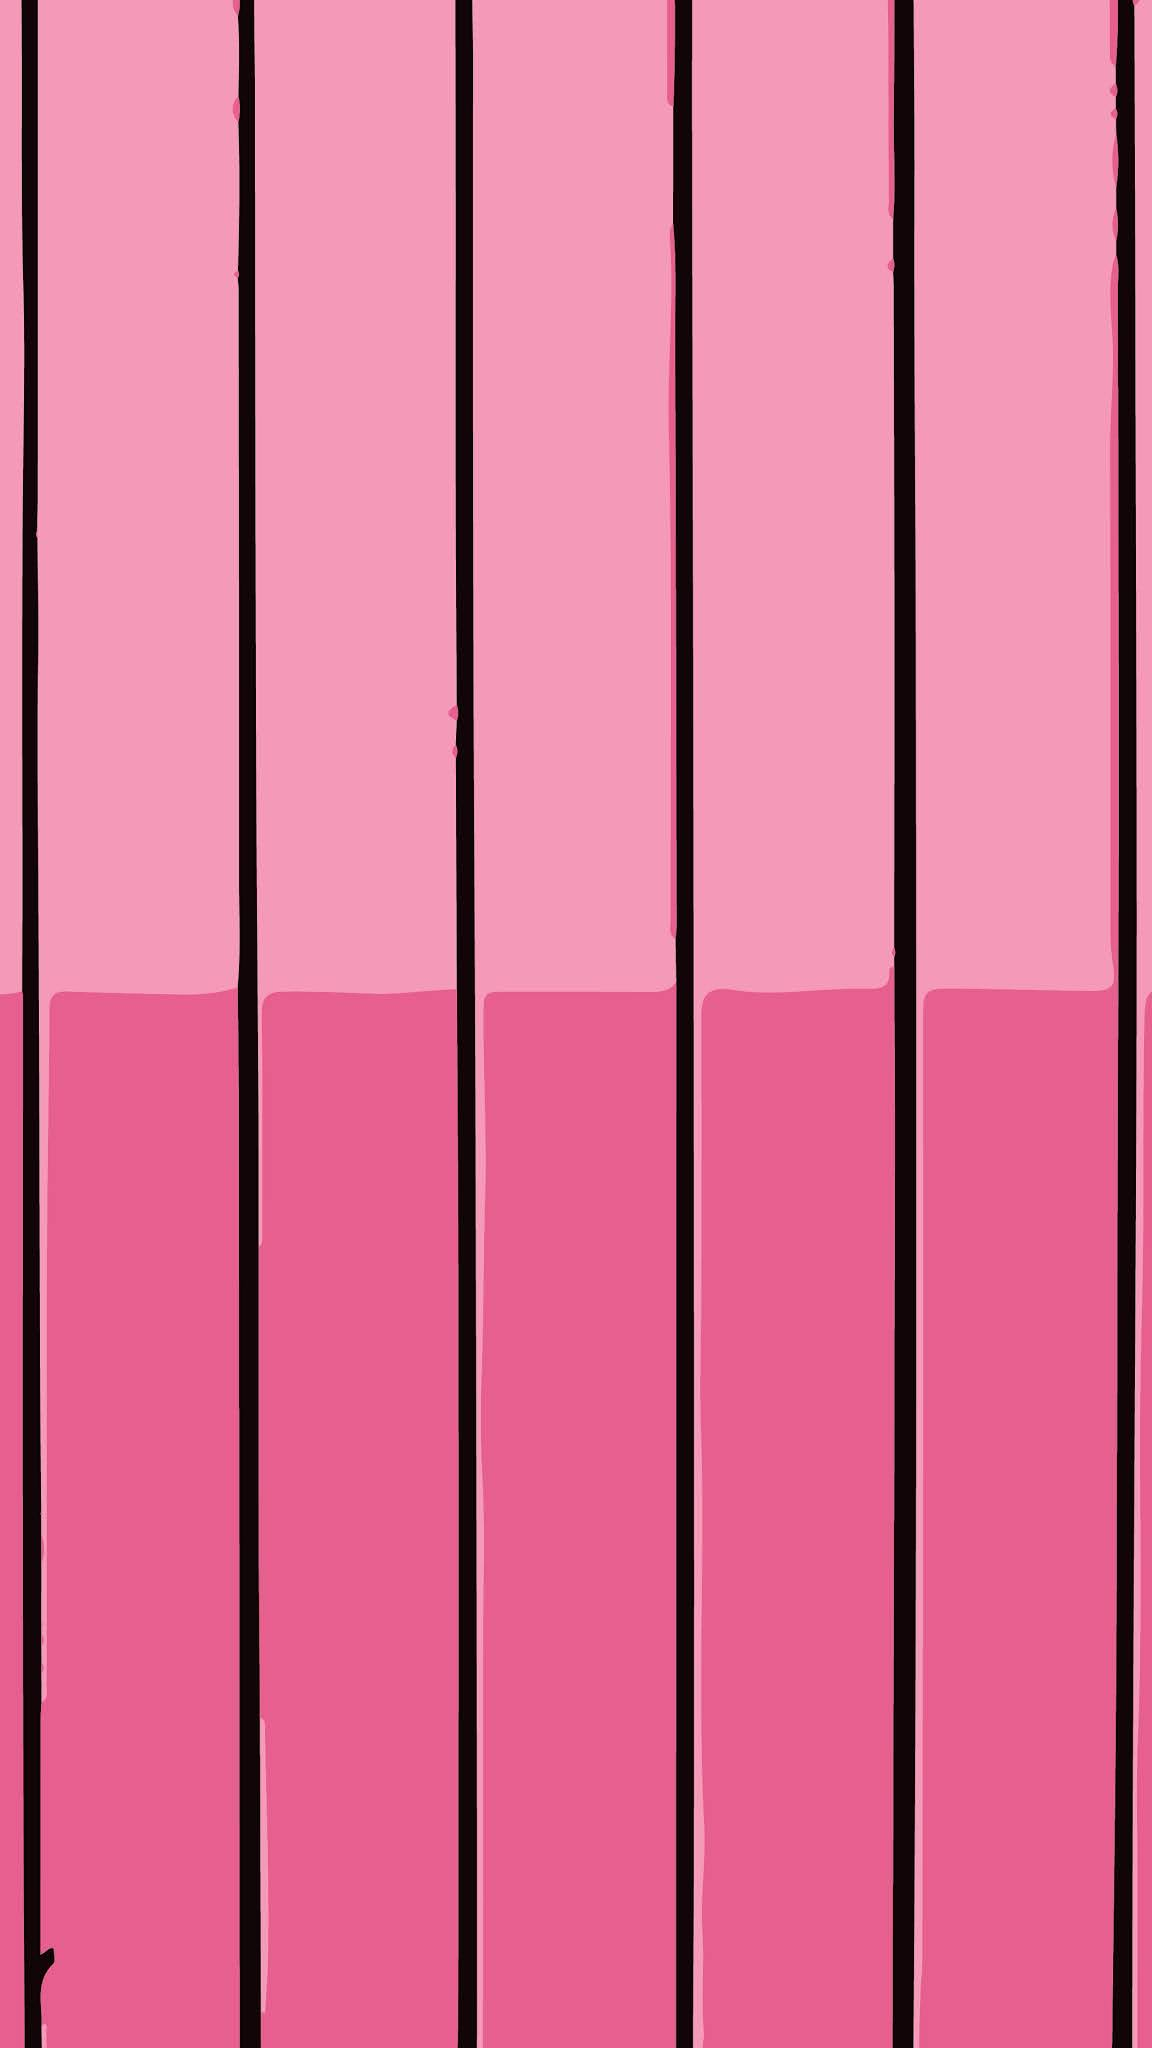 Simple wall pink two tone background for mobile phone in 4k